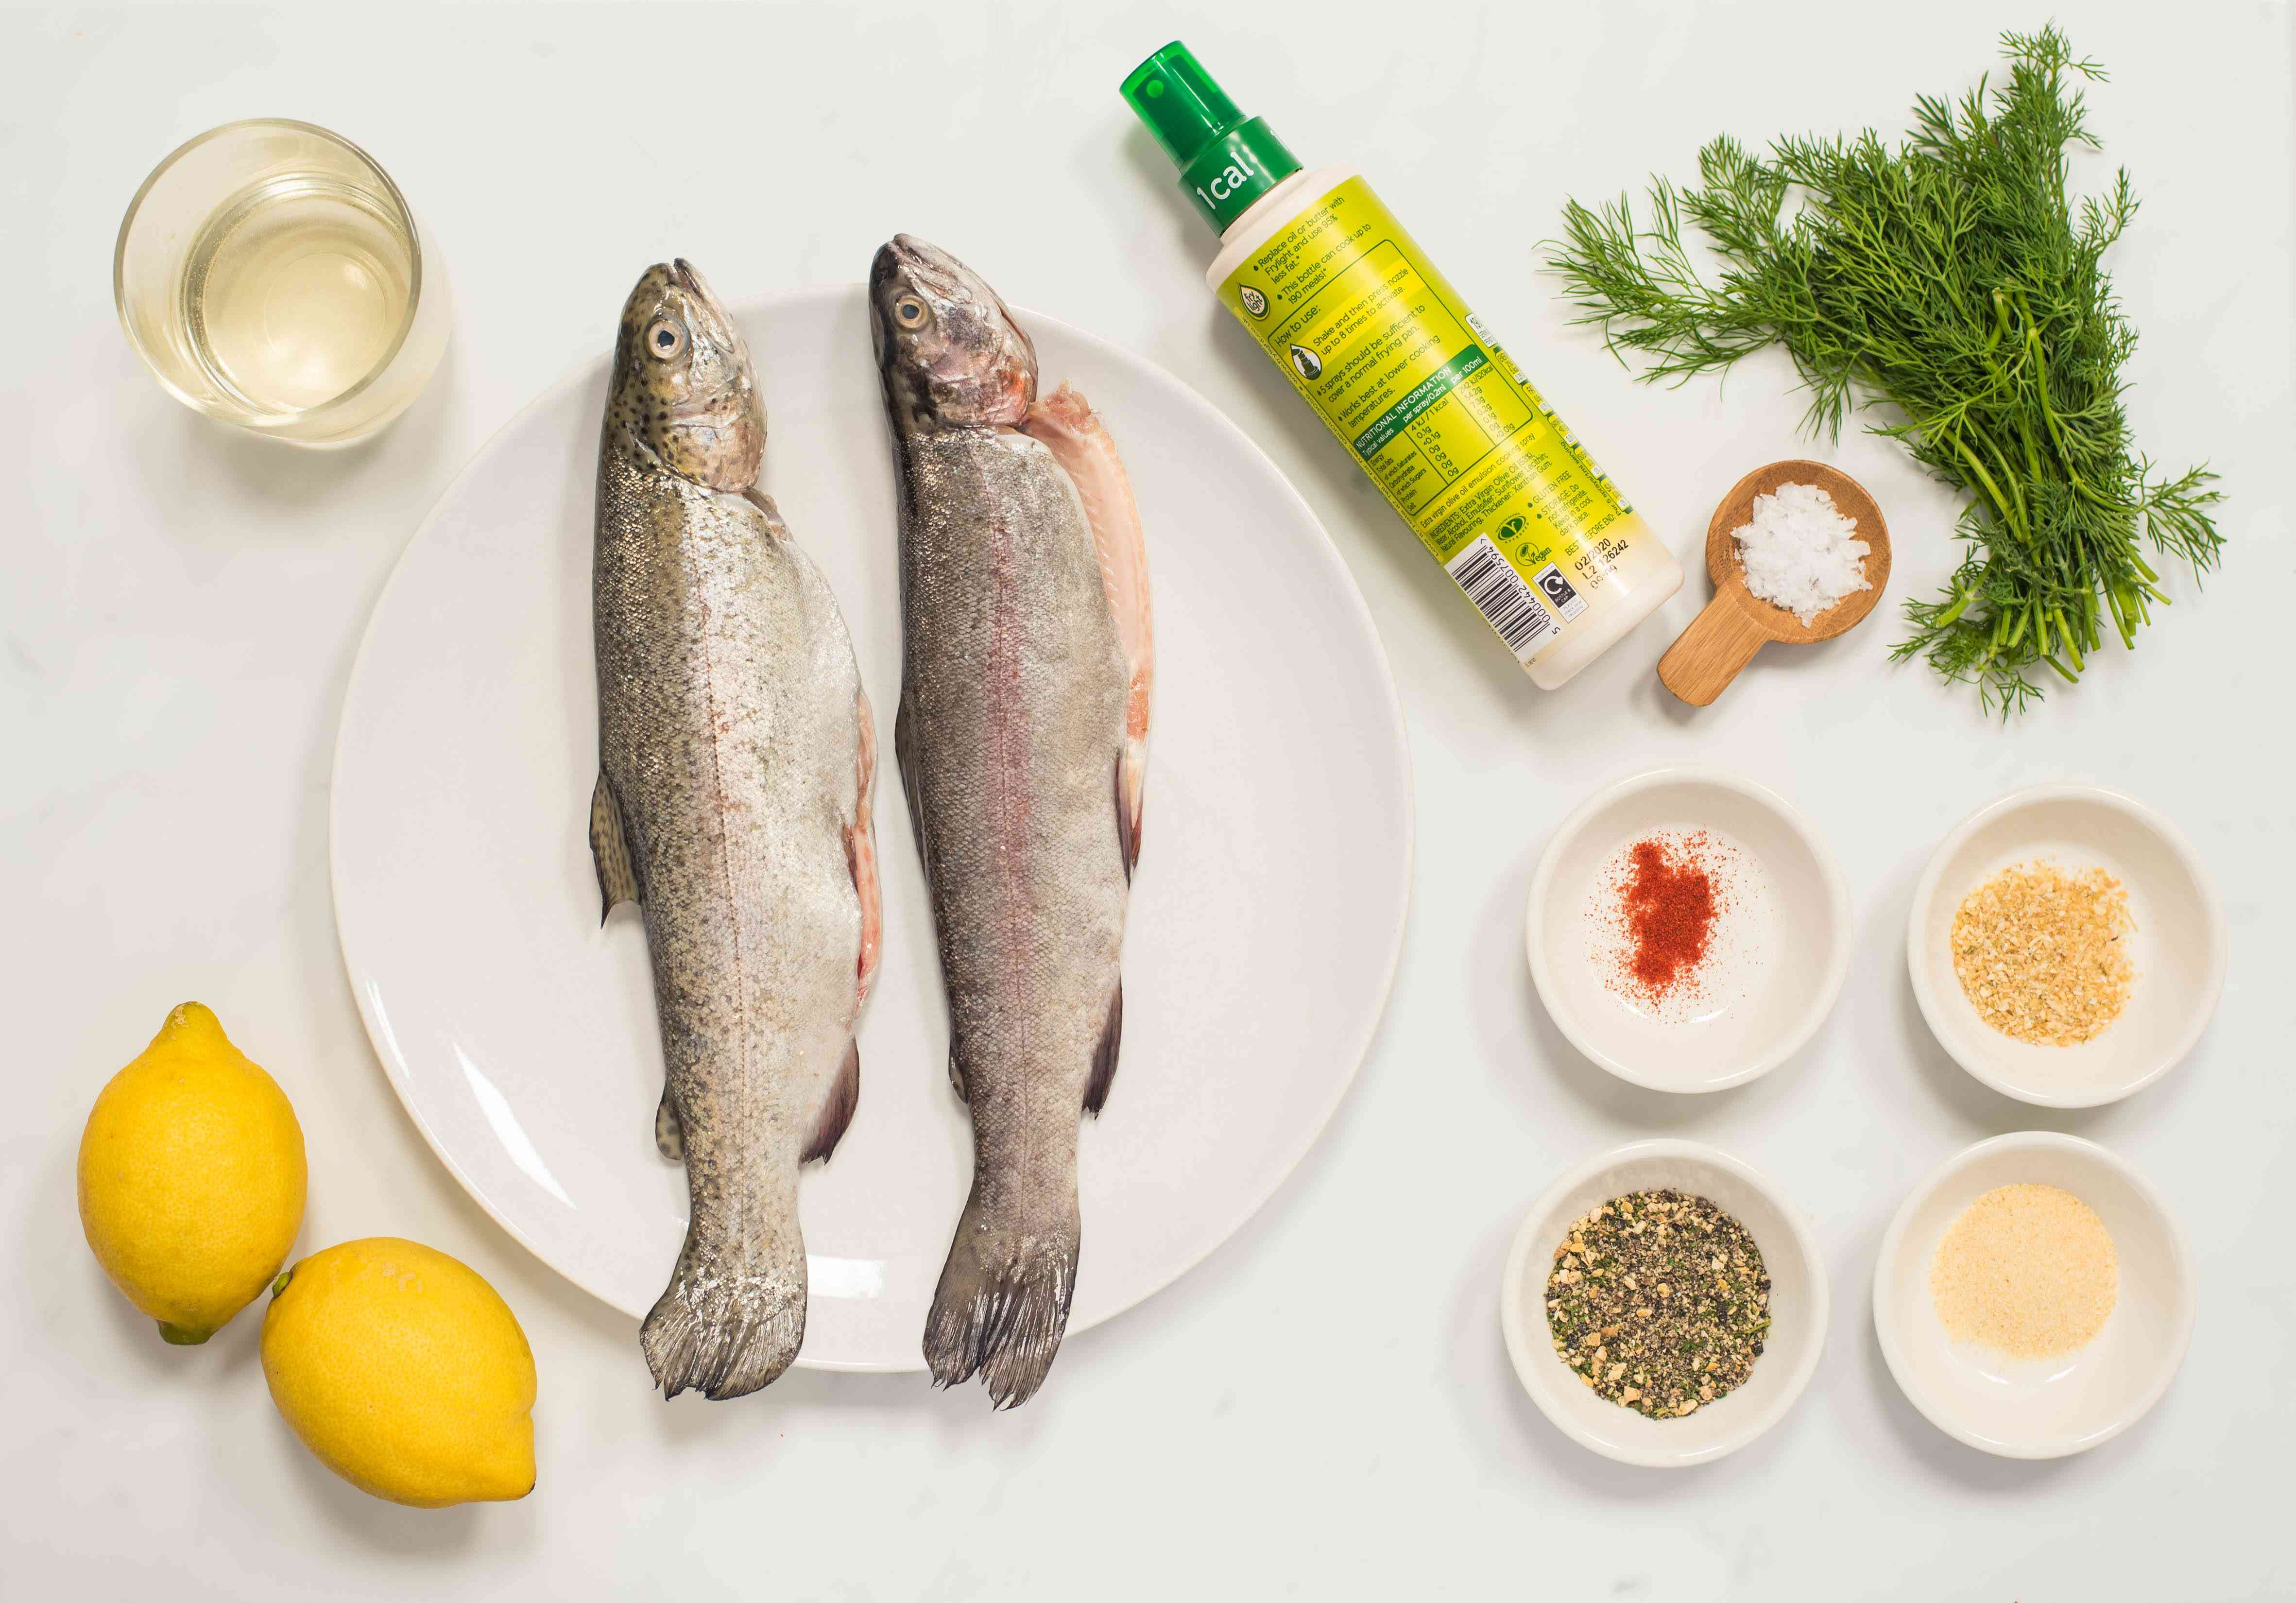 Ingredients for baked whole trout